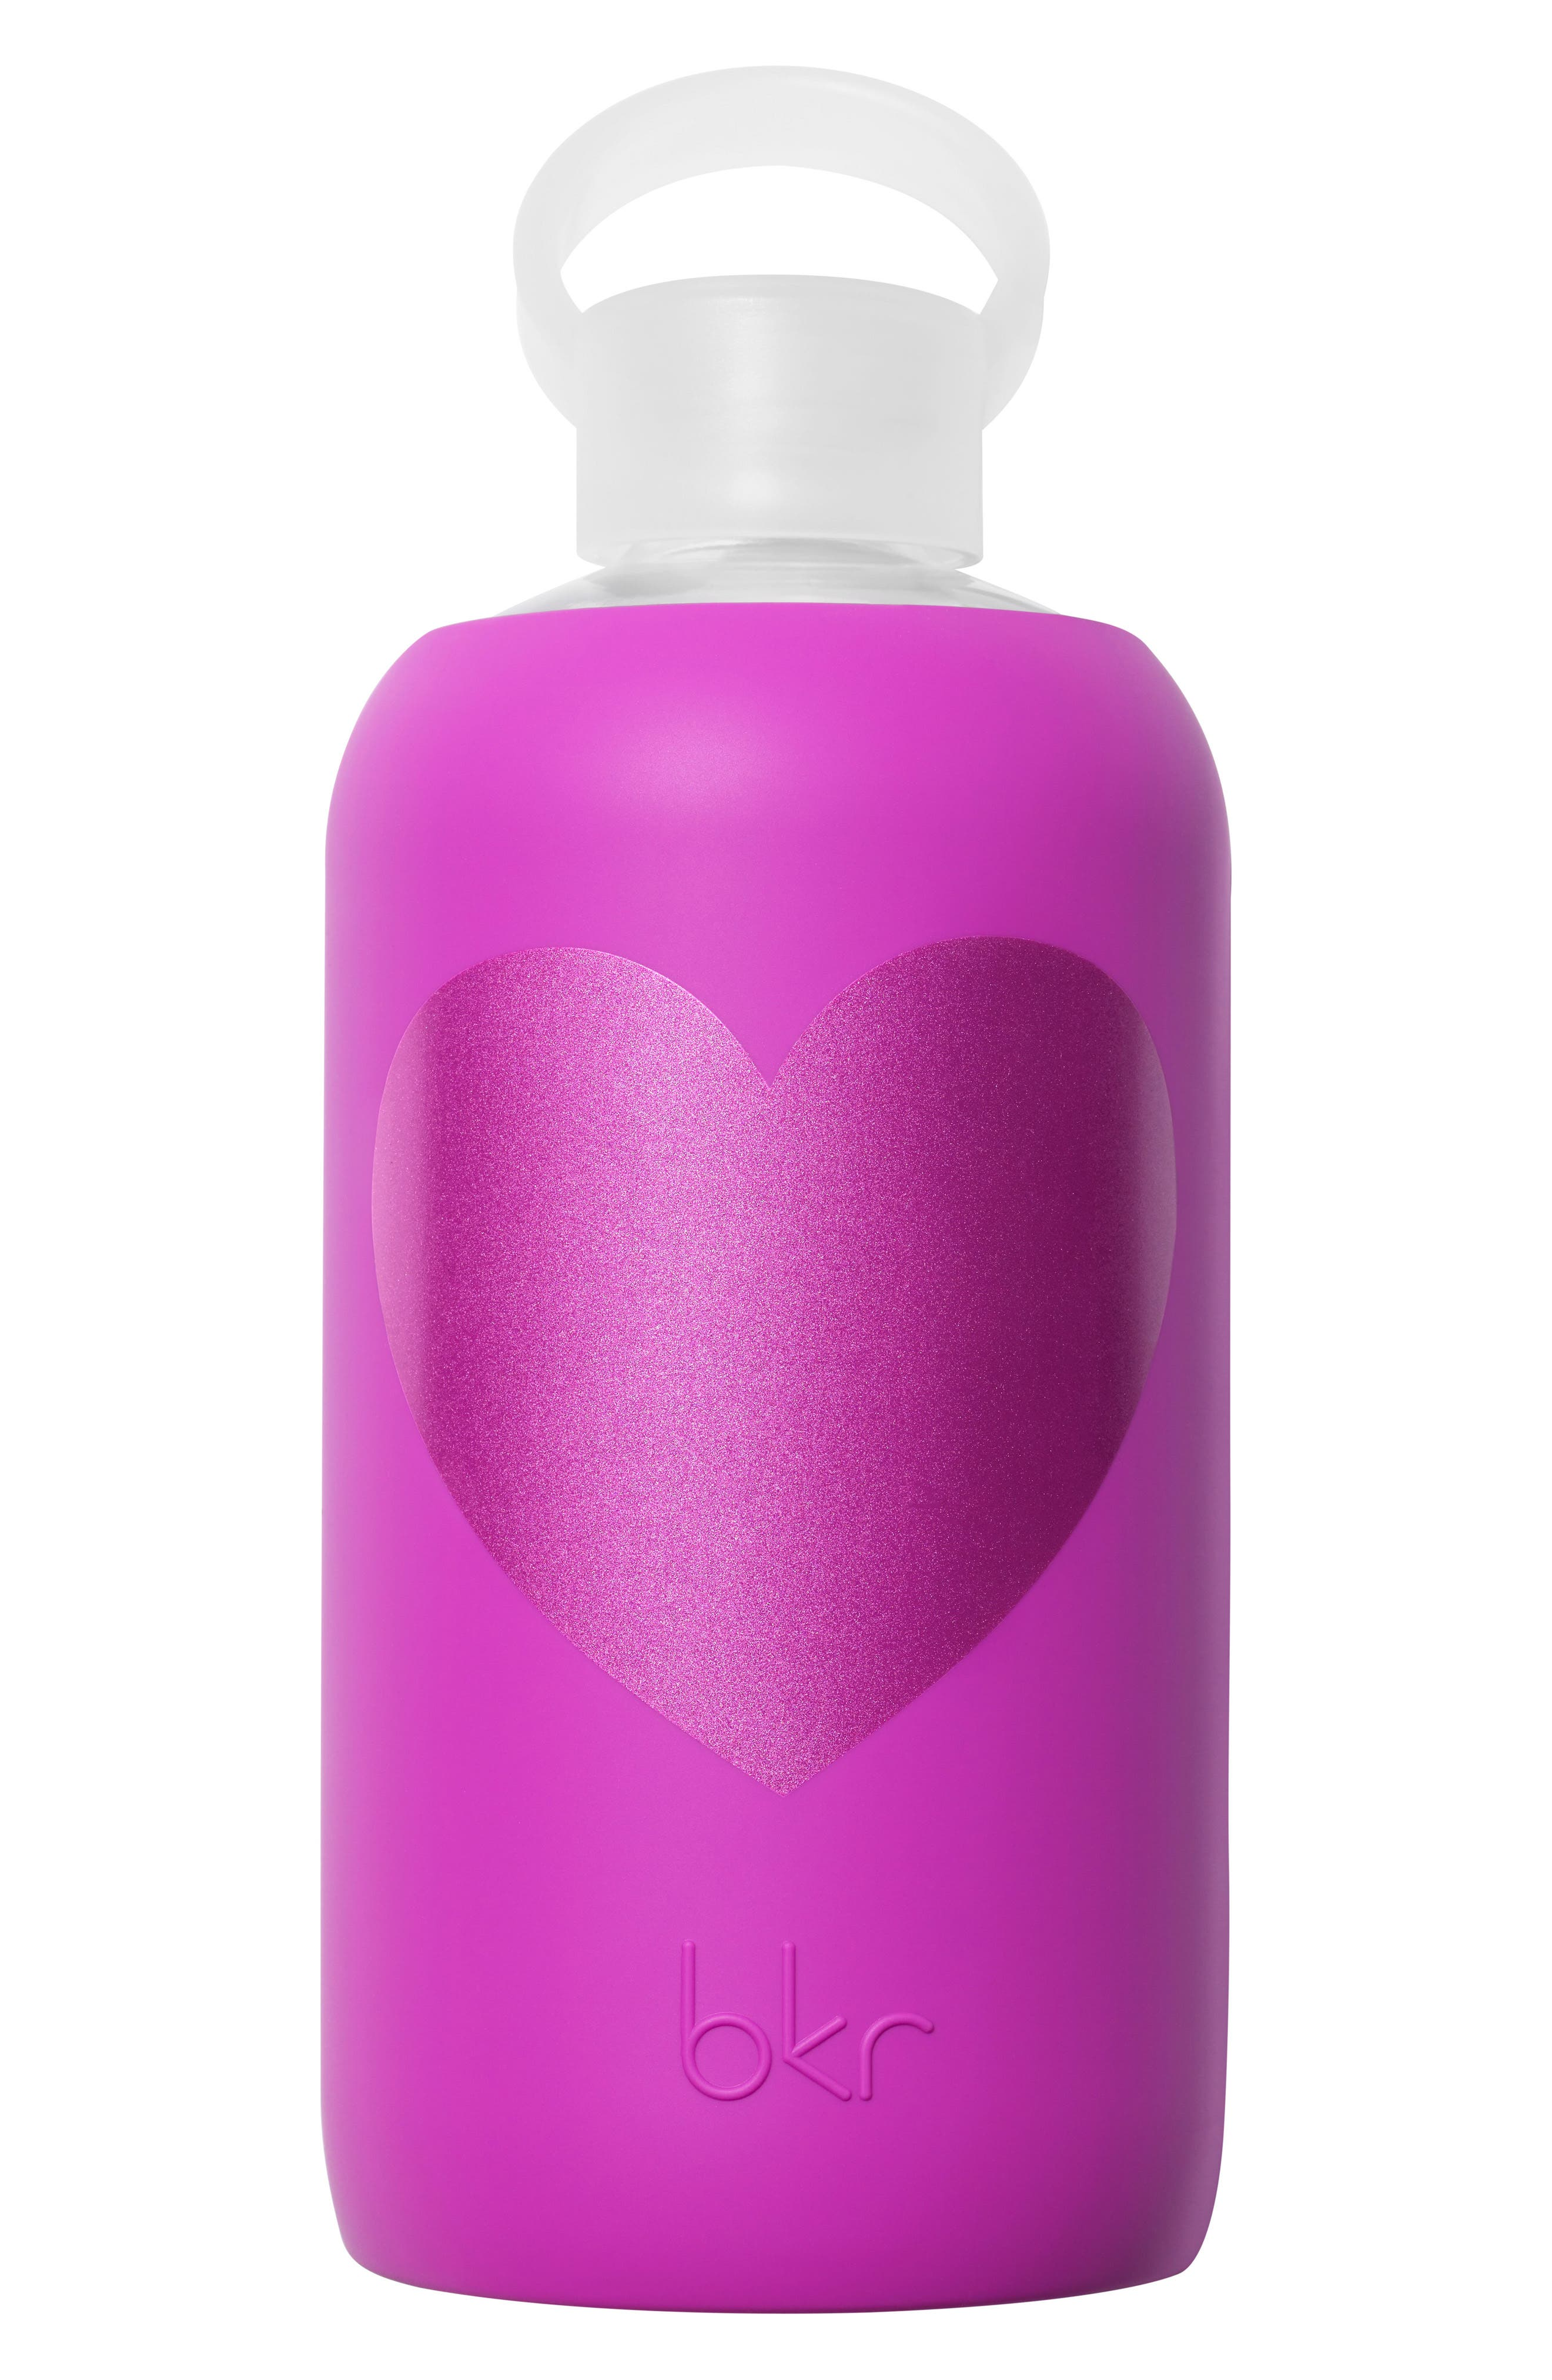 bkr® Heart 32-Ounce Glass Water Bottle